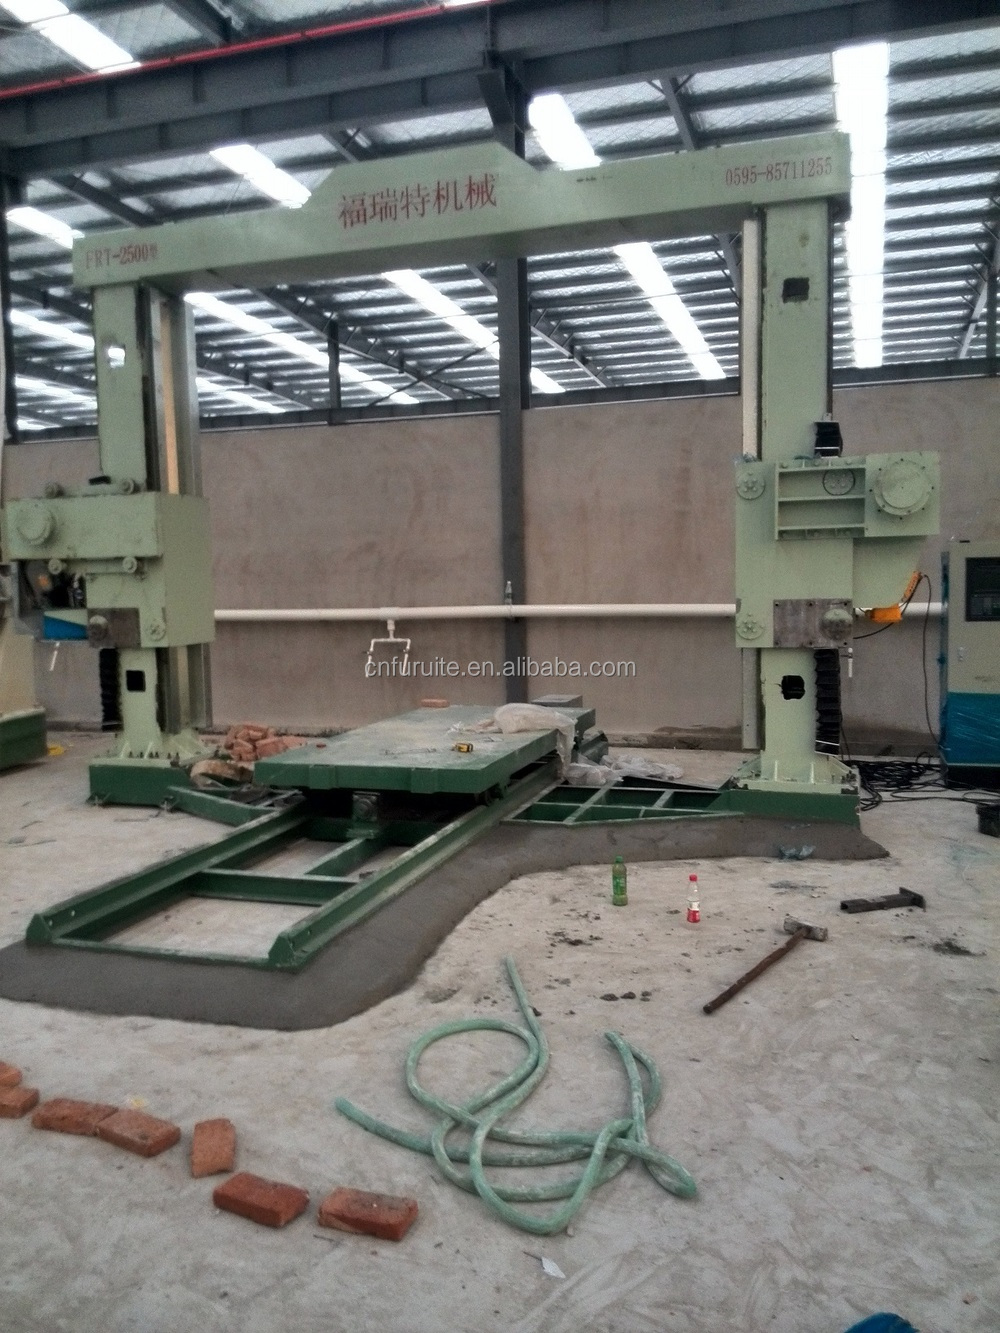 Diamond Wire Saw Circular Cutting Machine - Buy Diamond Wire Saw ...